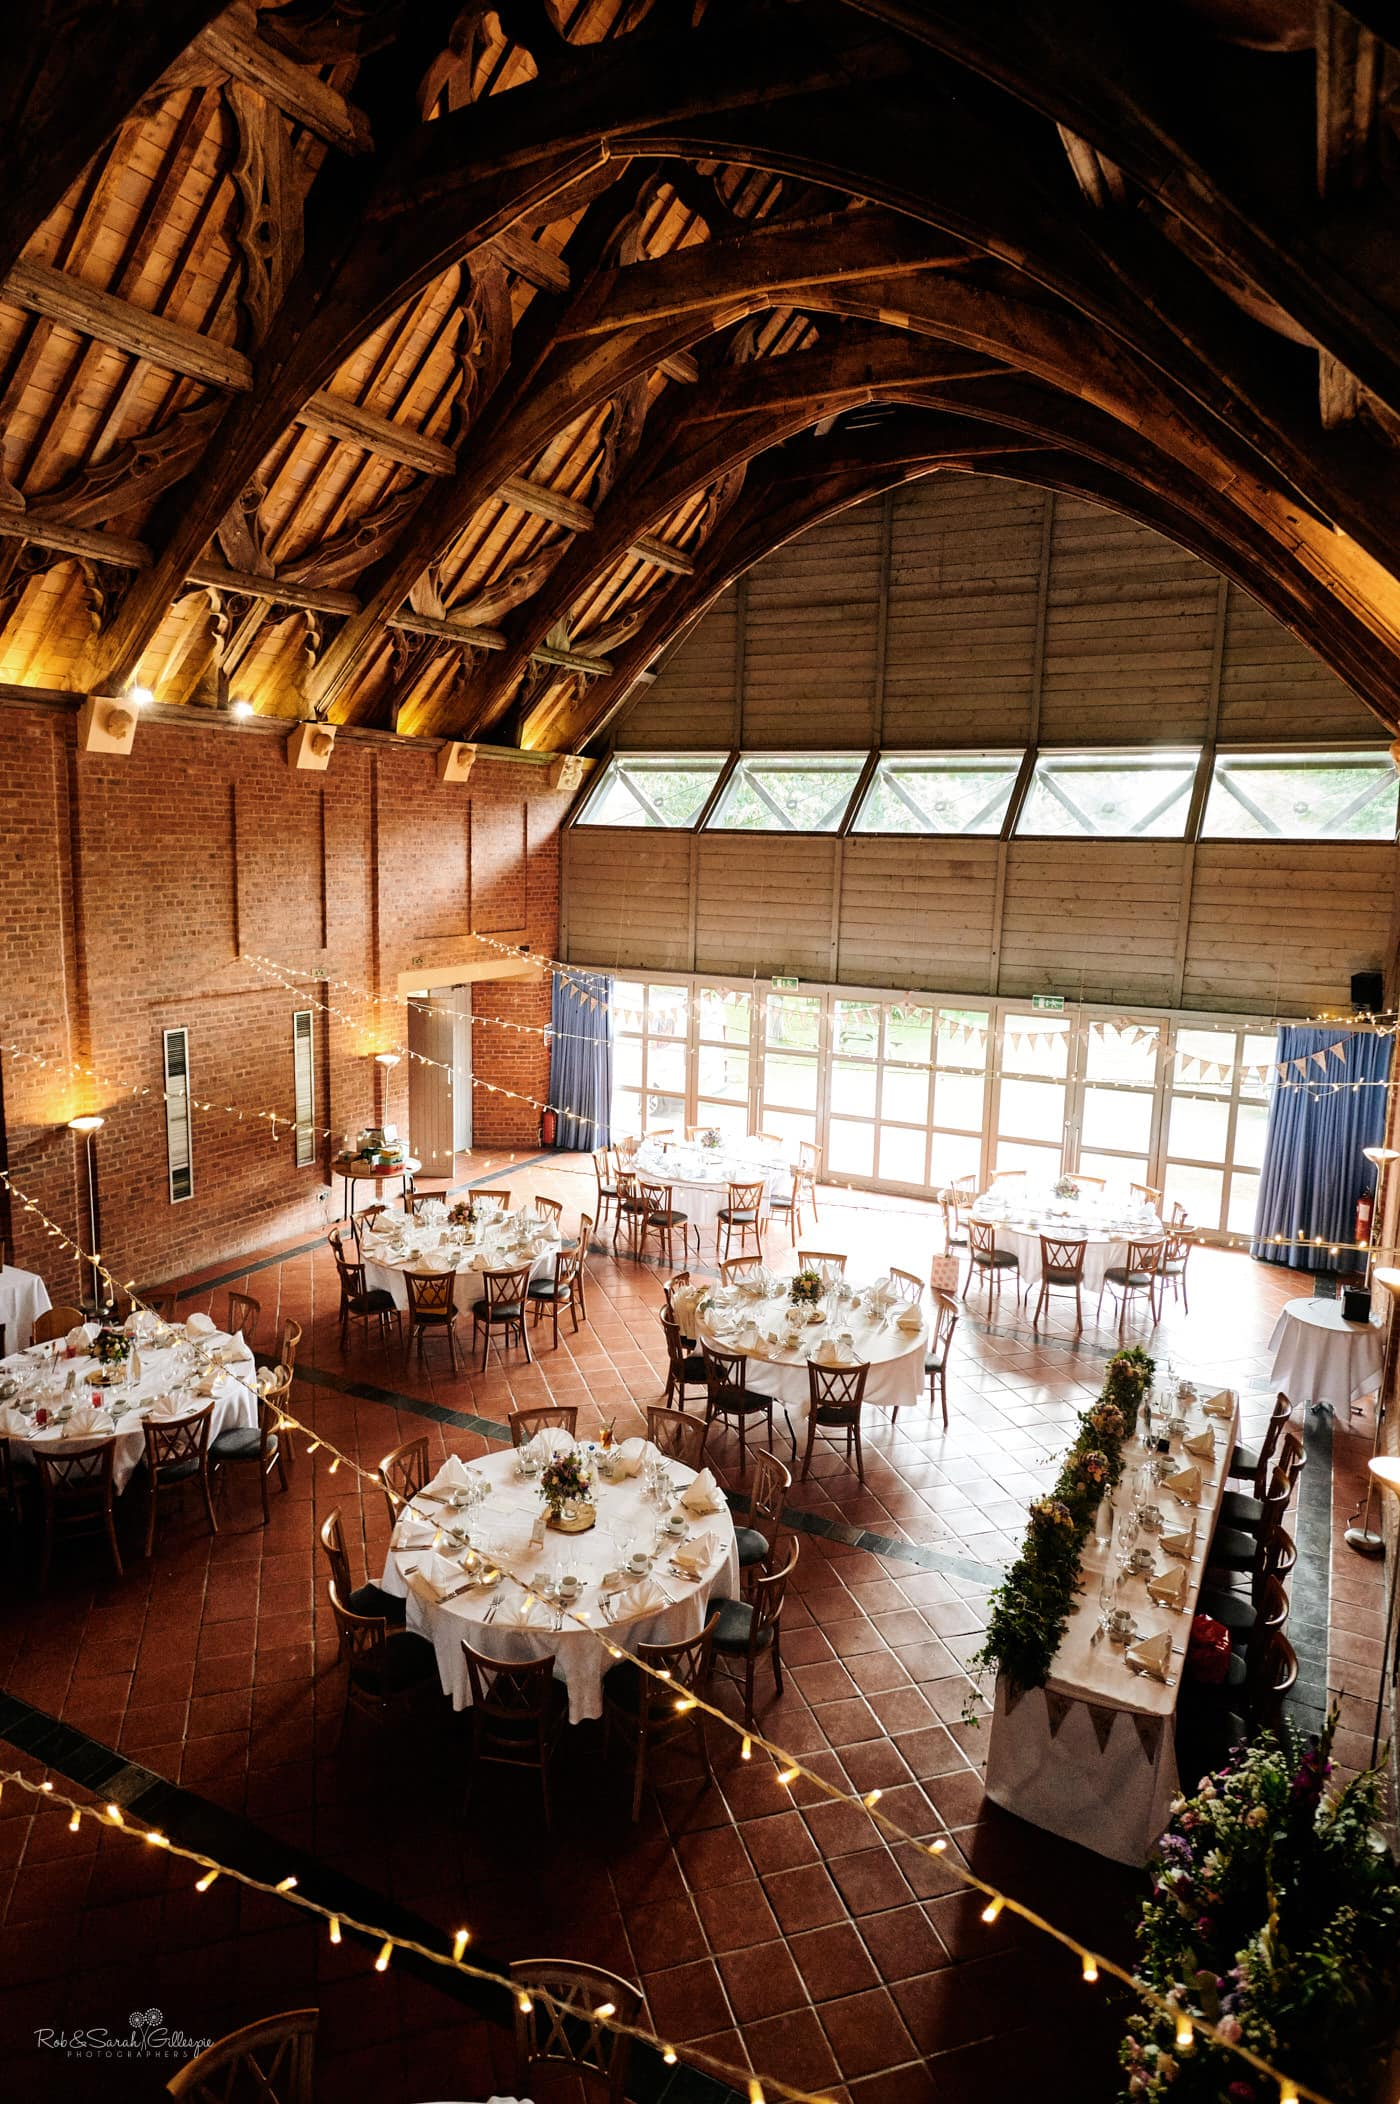 Inside Guest Hall at Avoncroft Museum wedding, set up ready for wedding breakfast